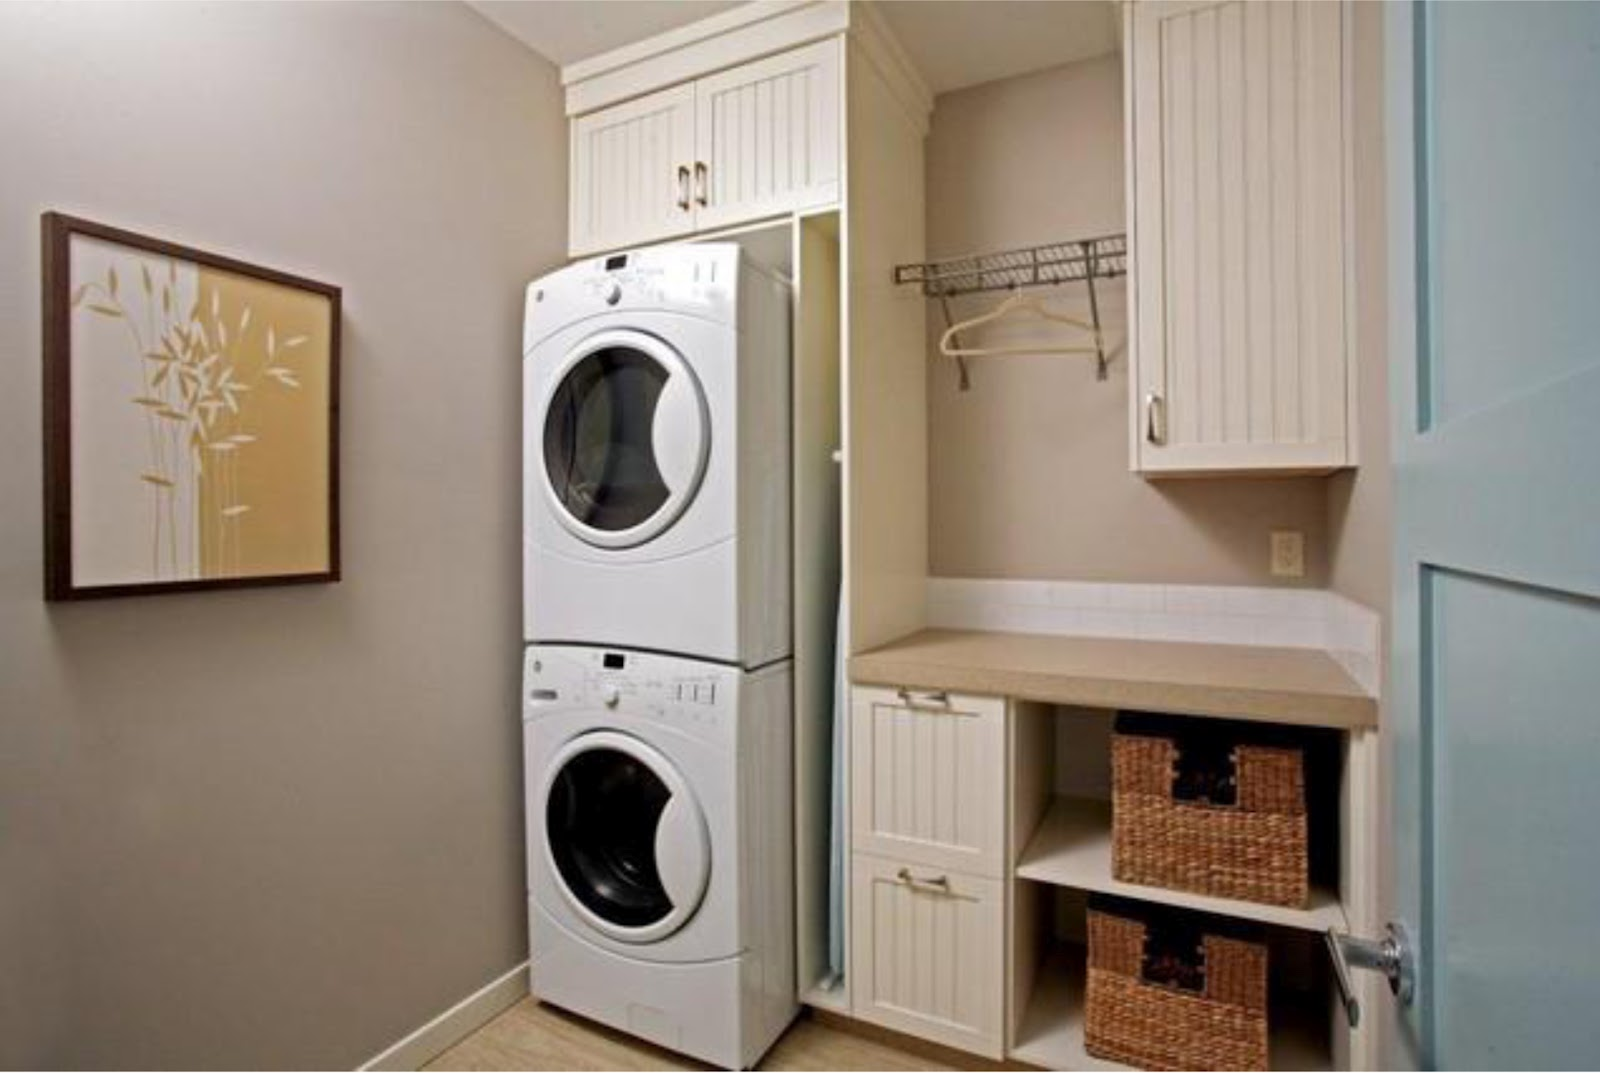 Simplifying remodeling designer 39 s touch 10 tidy laundry for Laundry room design ideas